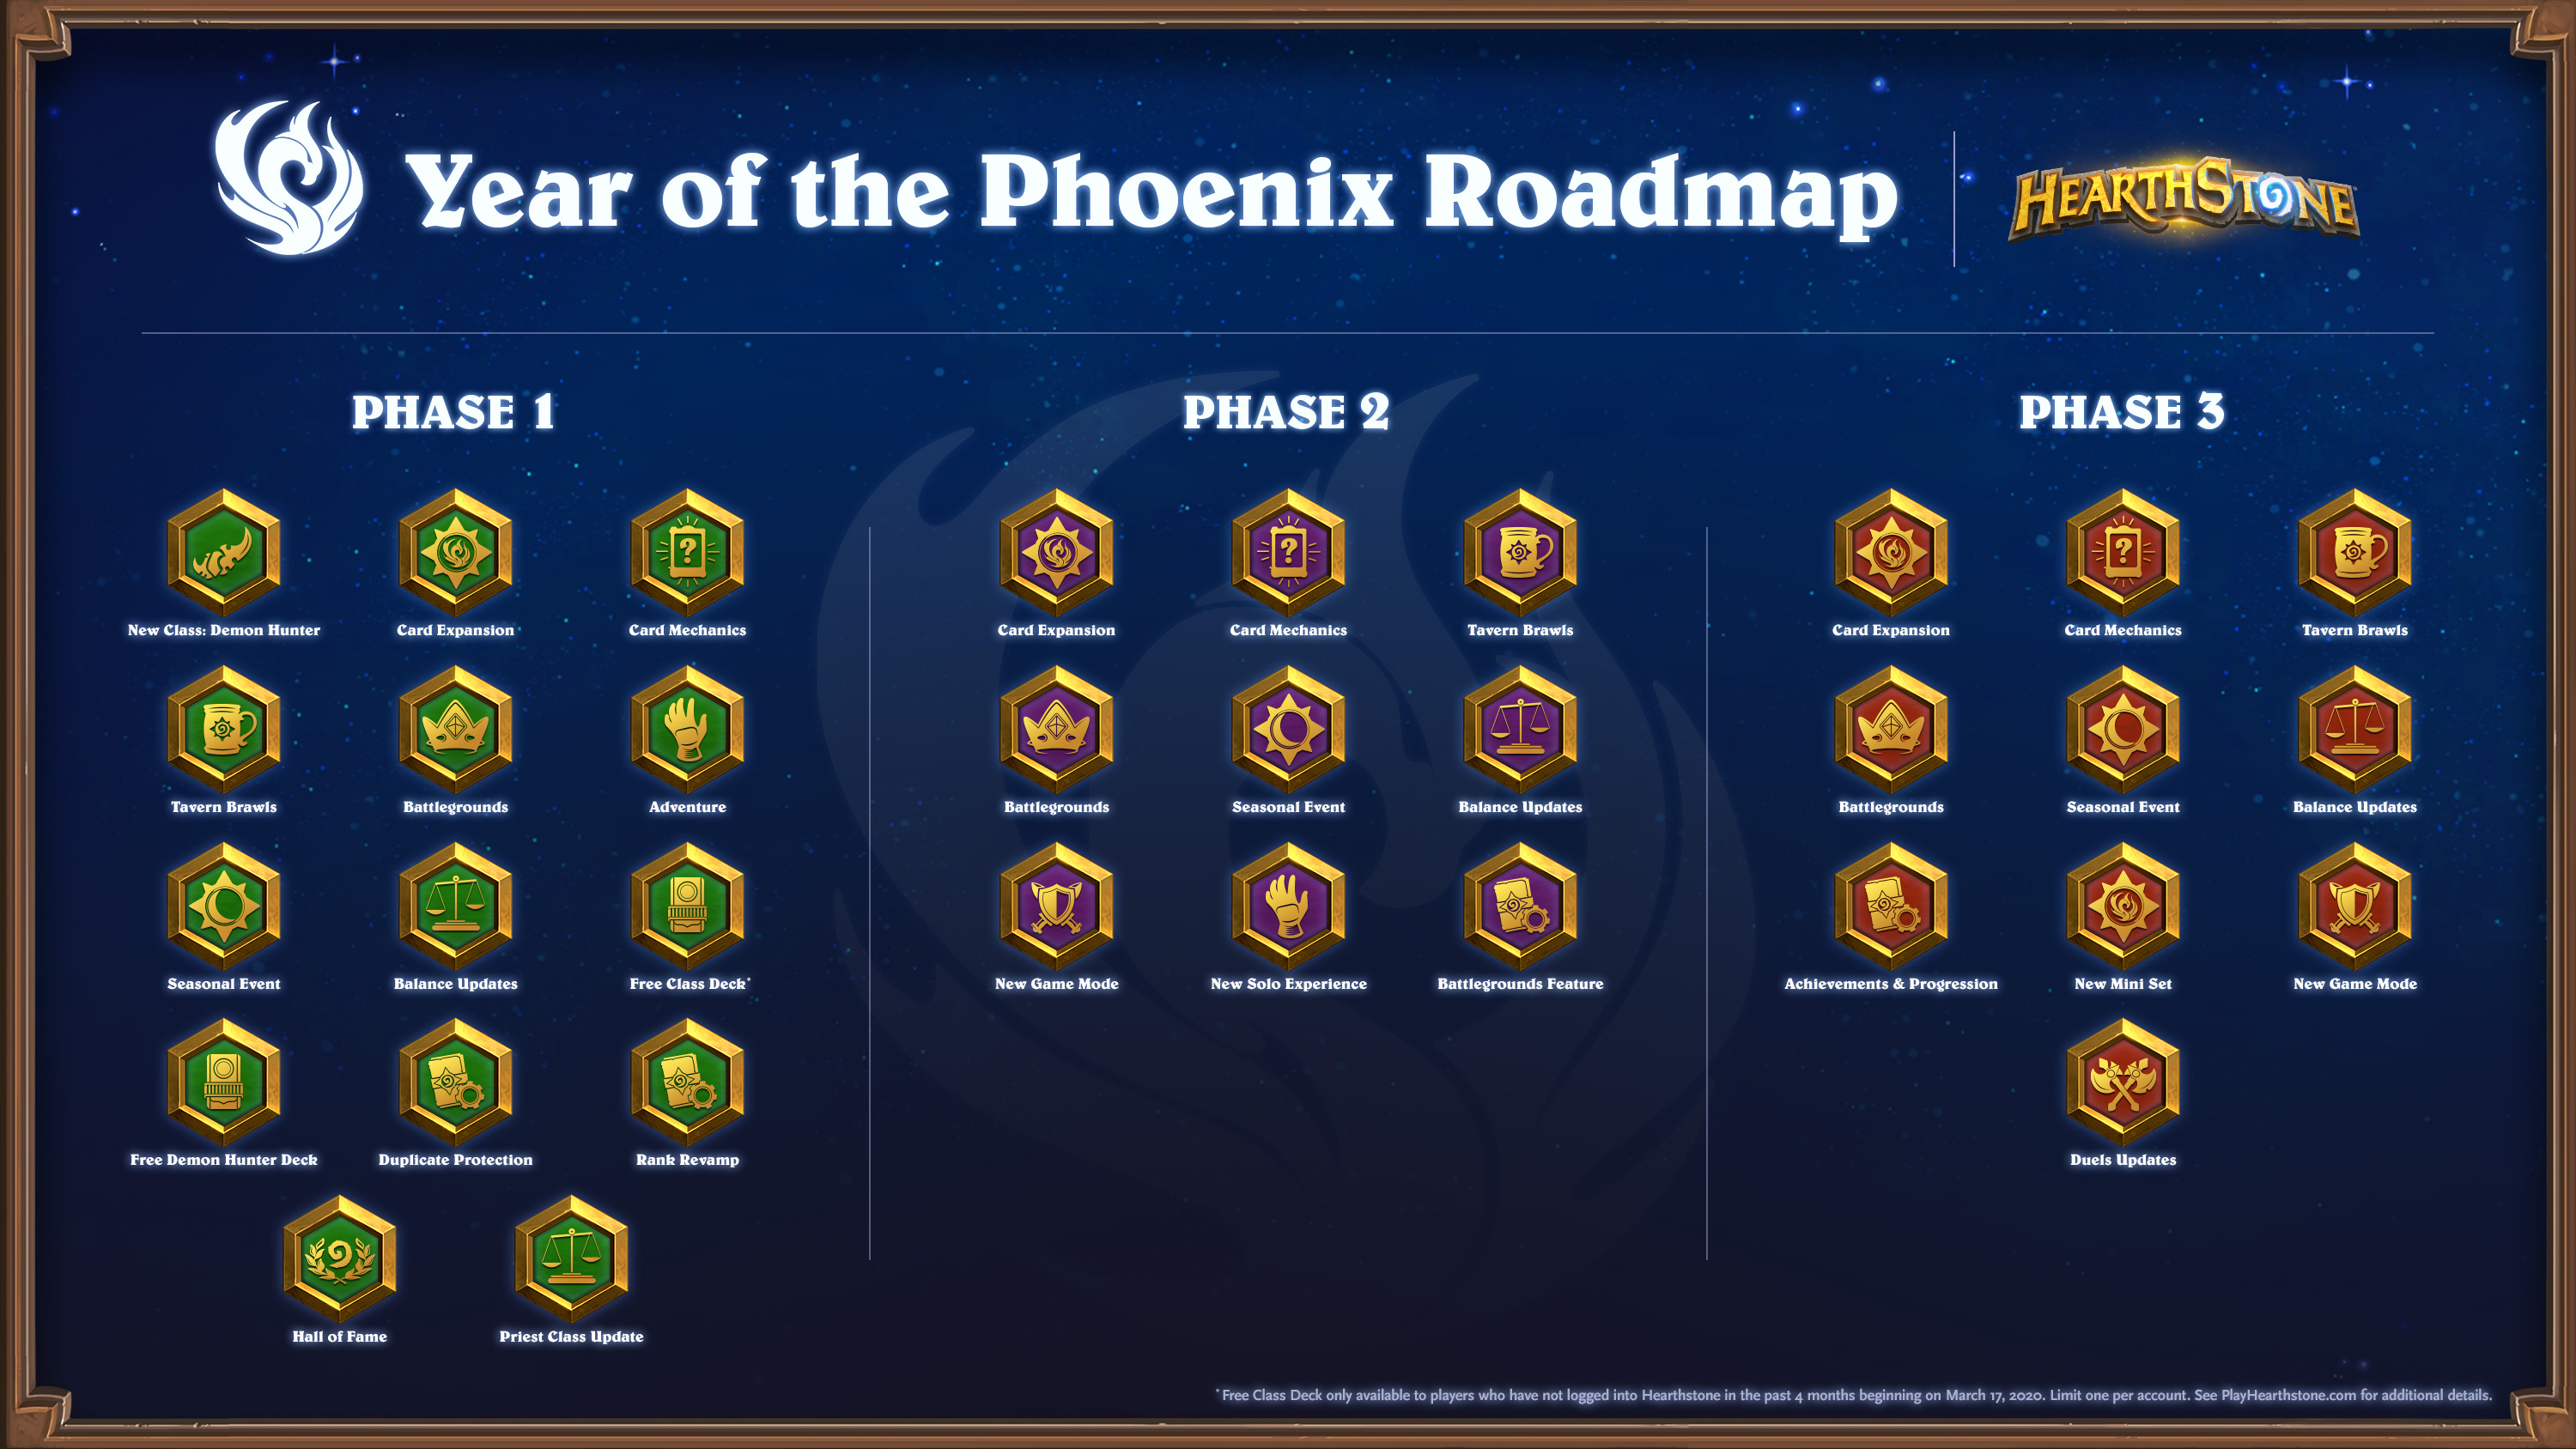 Year of the Phoenix Complete roadmap